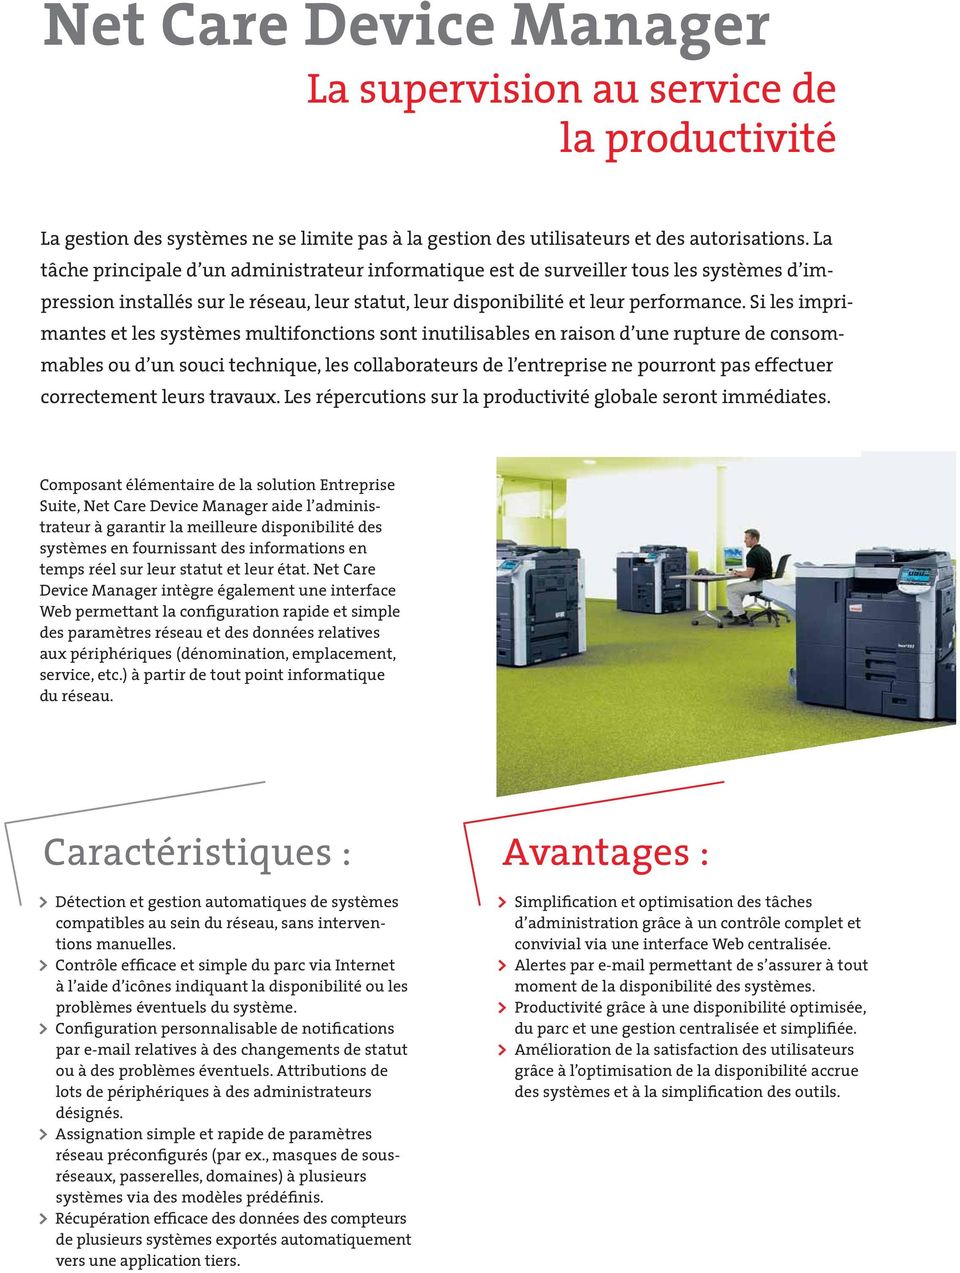 La The tâche essential principale task d un of any administrateur IT administrator informatique is the monitoring est de surveiller of all networked tous les systèmes output d impression their